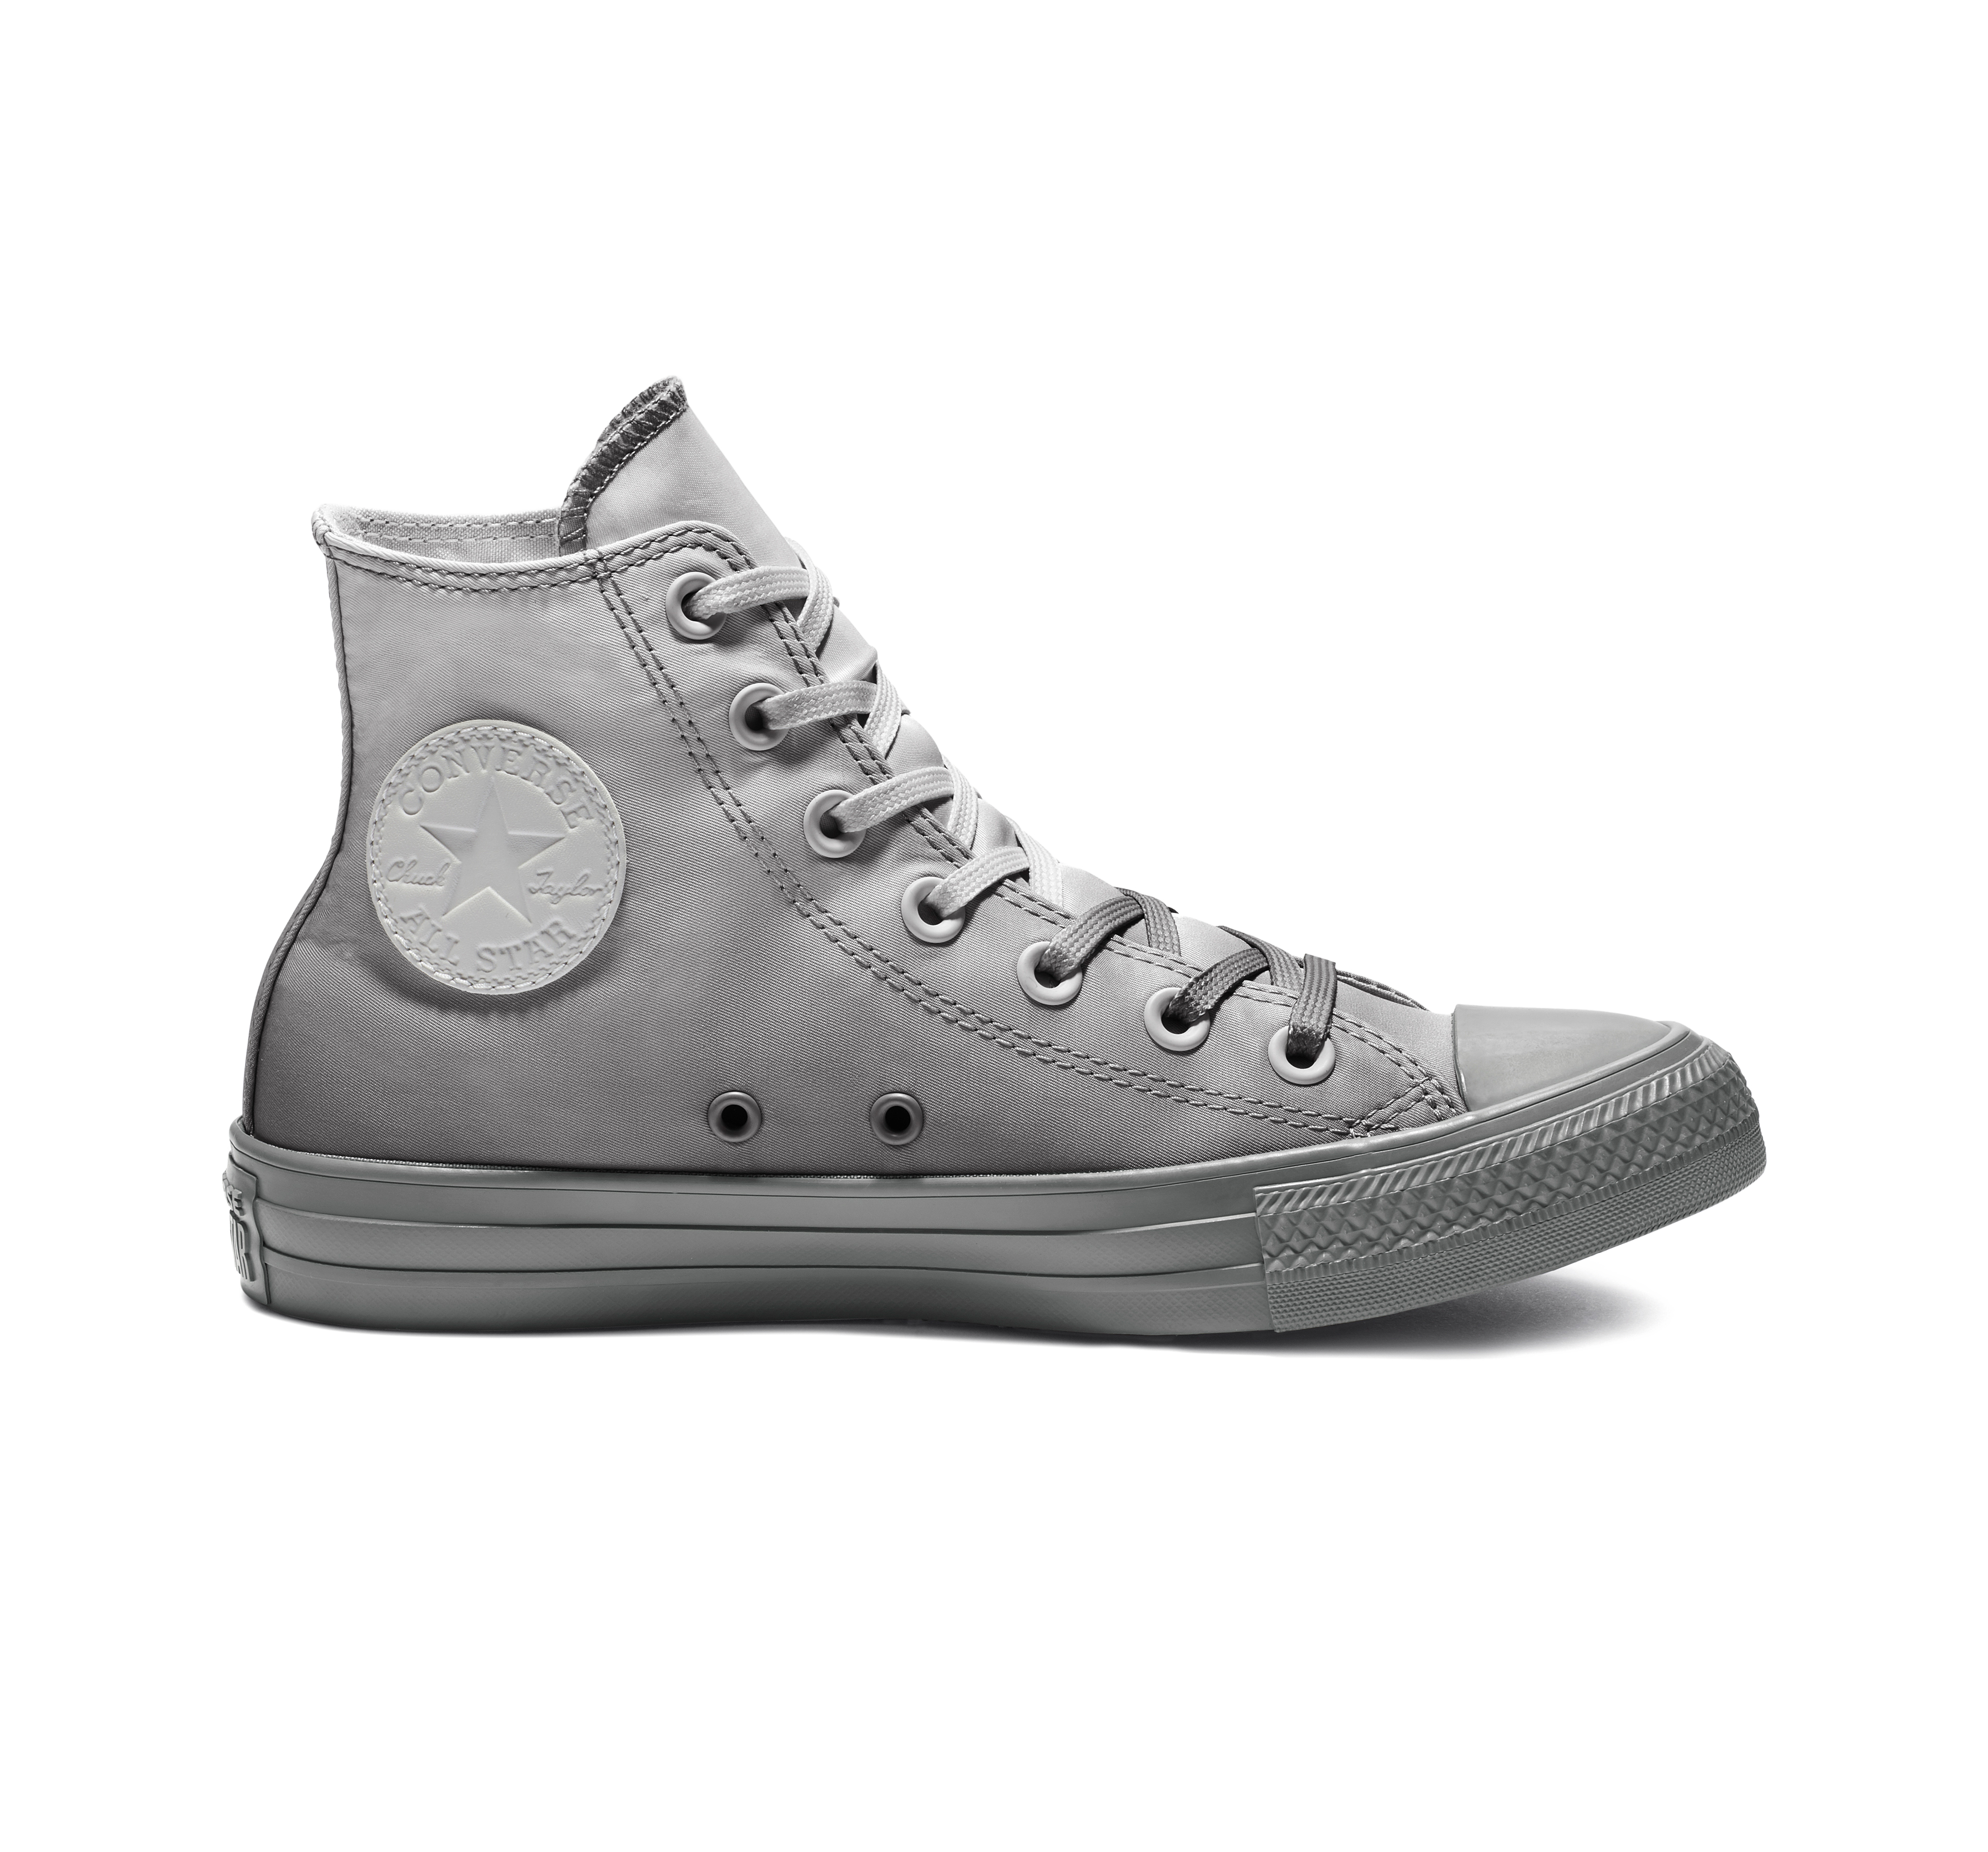 24d6affdd6462 Chuck Taylor All Star Dip Dye High Top in 2019 | Products | Chuck ...